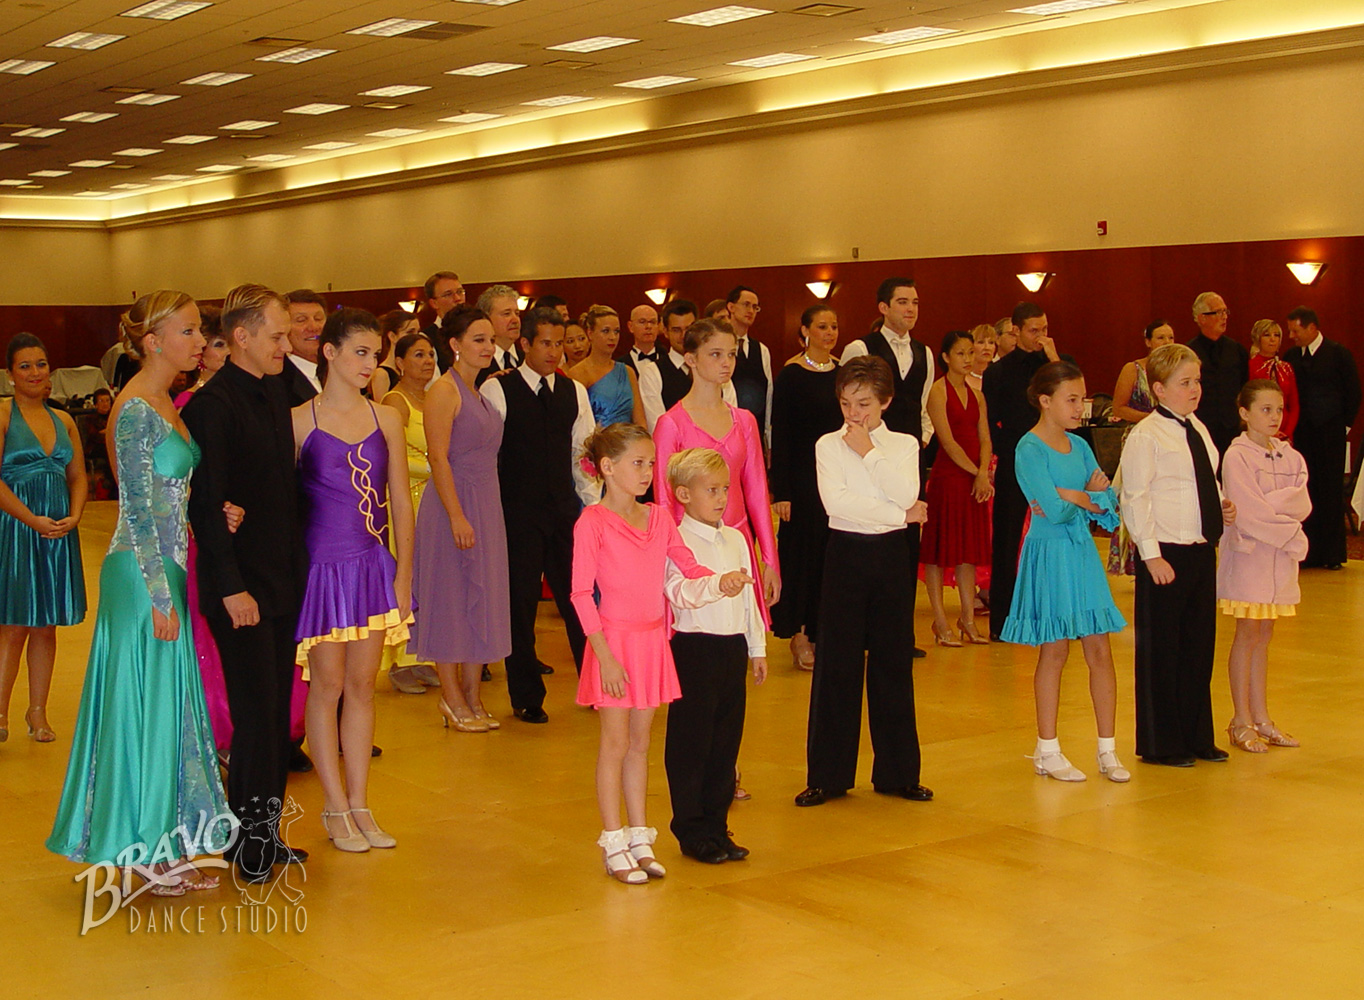 Bravo-Kids-DanceSport-1-(5).jpg